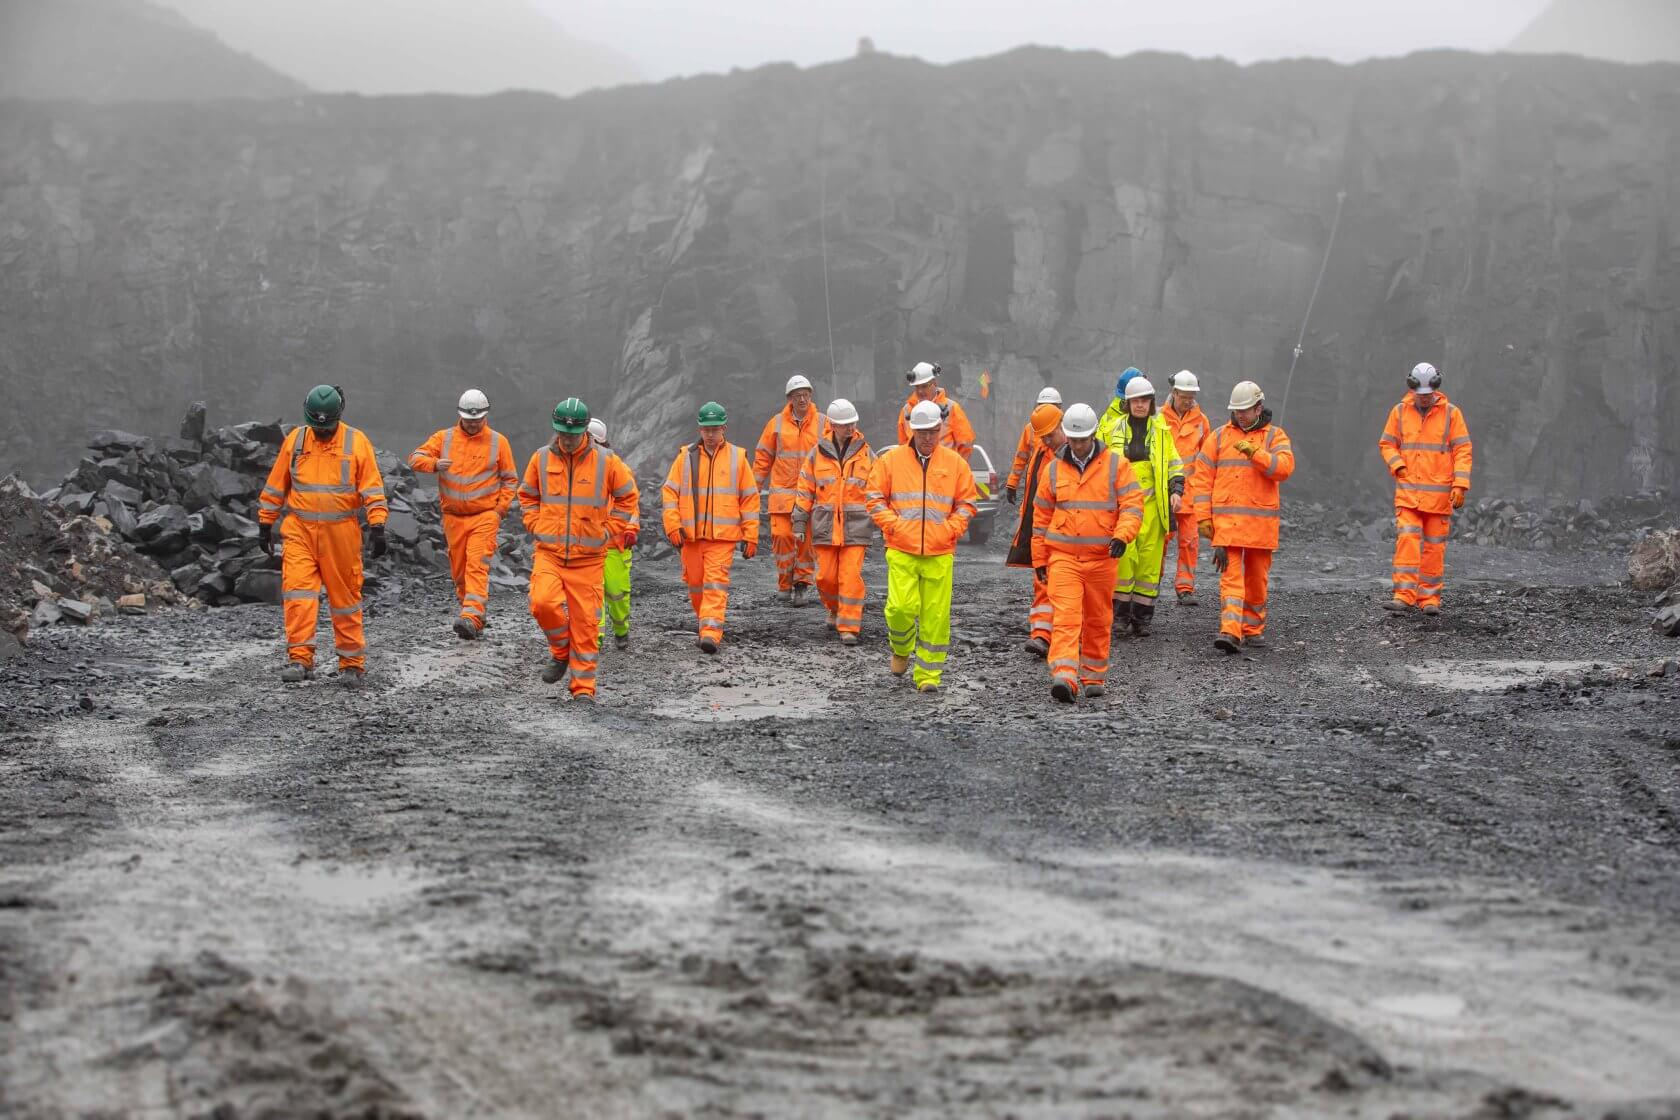 a group of people in a quarry in orange high vis